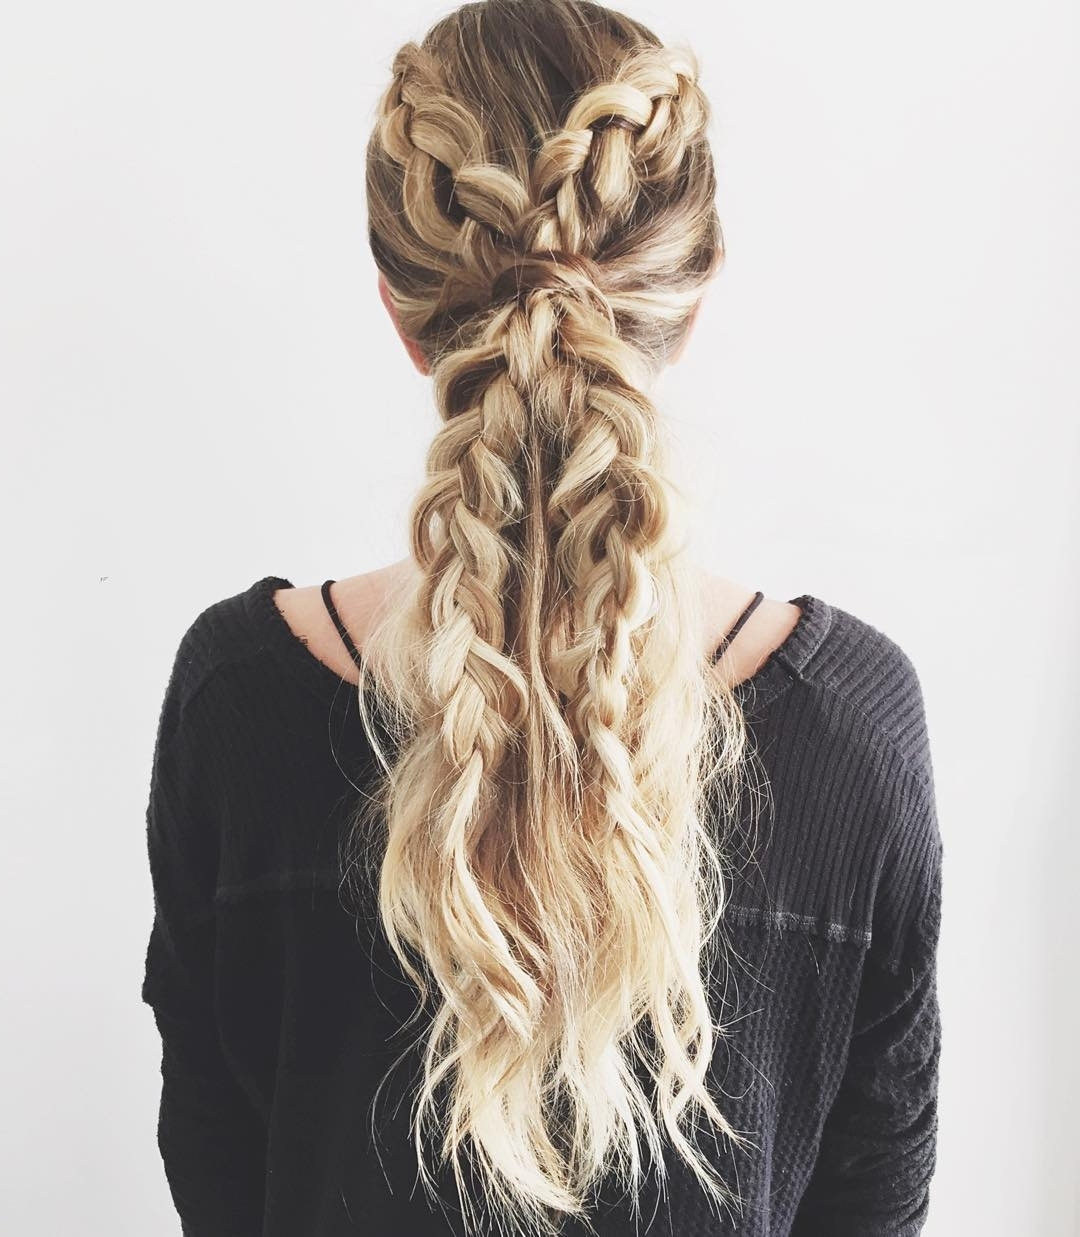 30 Braided Ponytail Hairstyles To Slay In  (View 4 of 20)